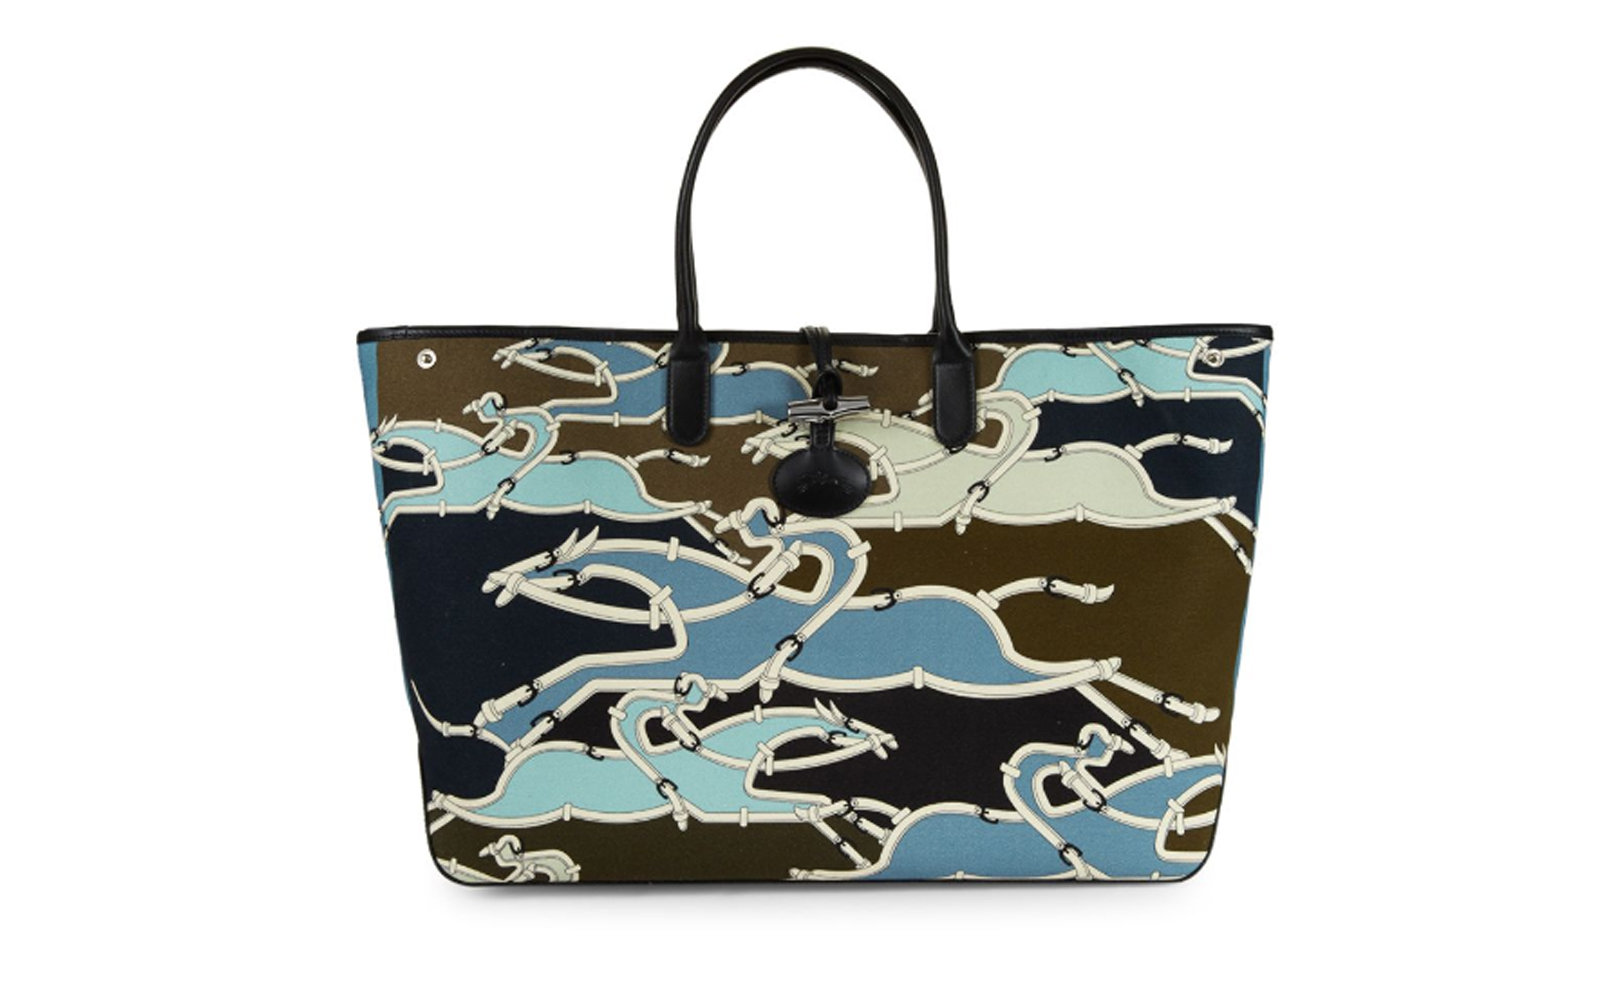 Longchamp Printed Logo Tote in Pilot Blue